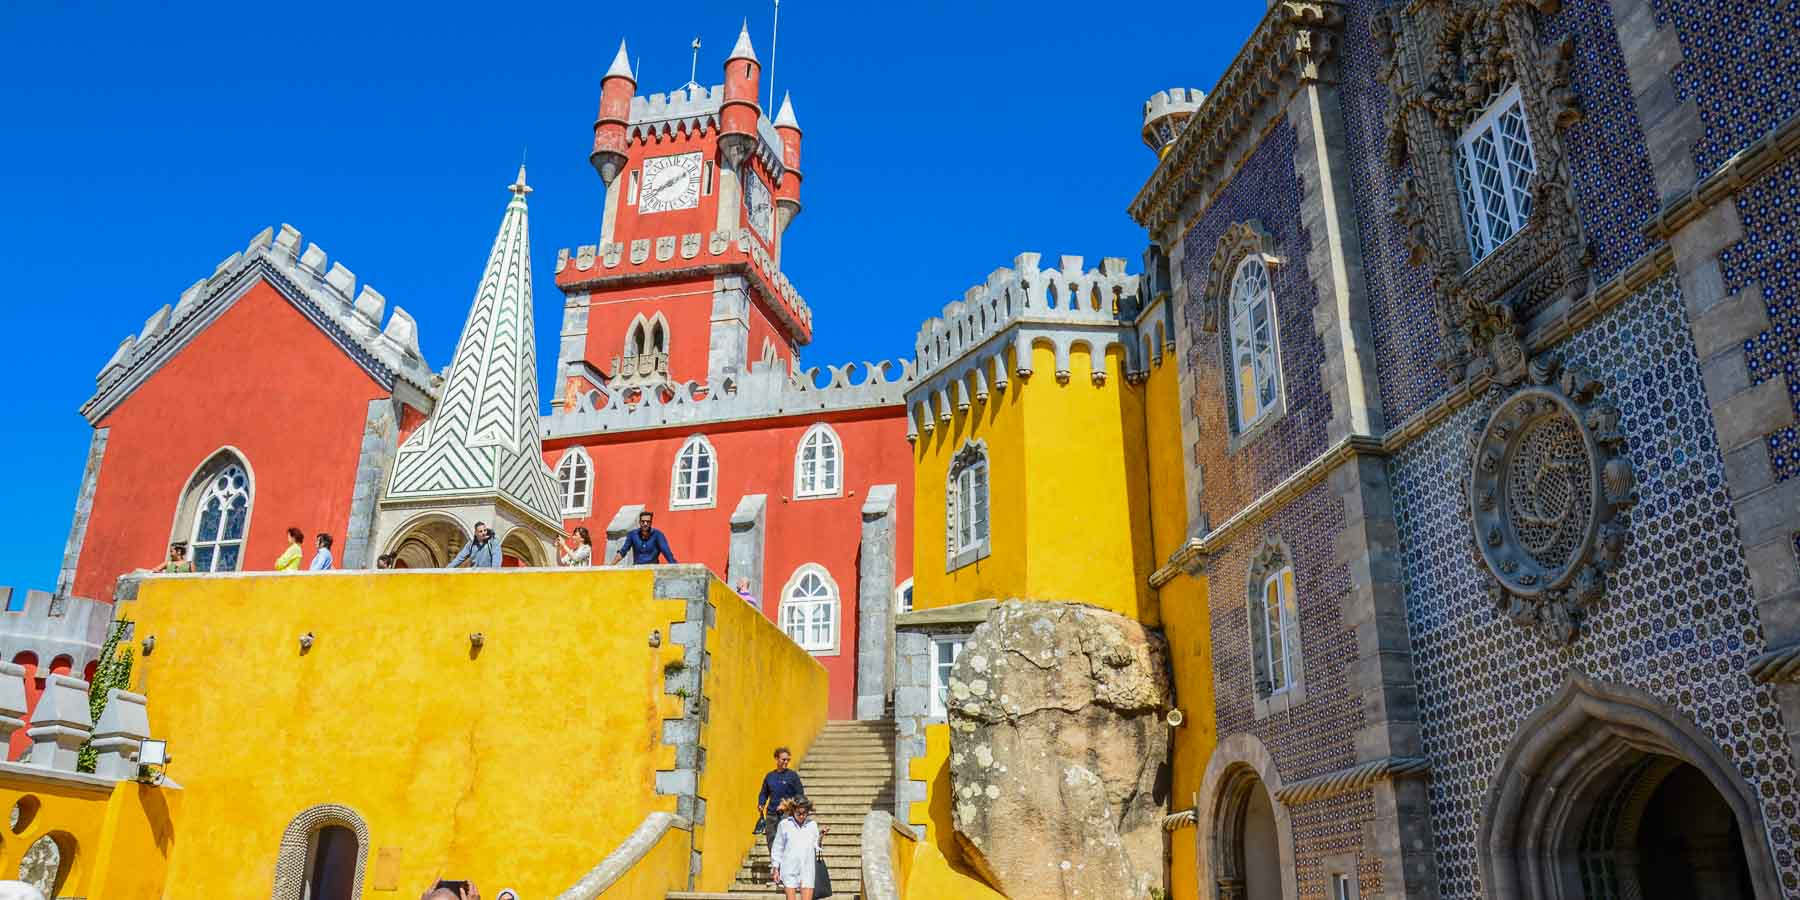 The Pena Palace in Sintra, Portugal.